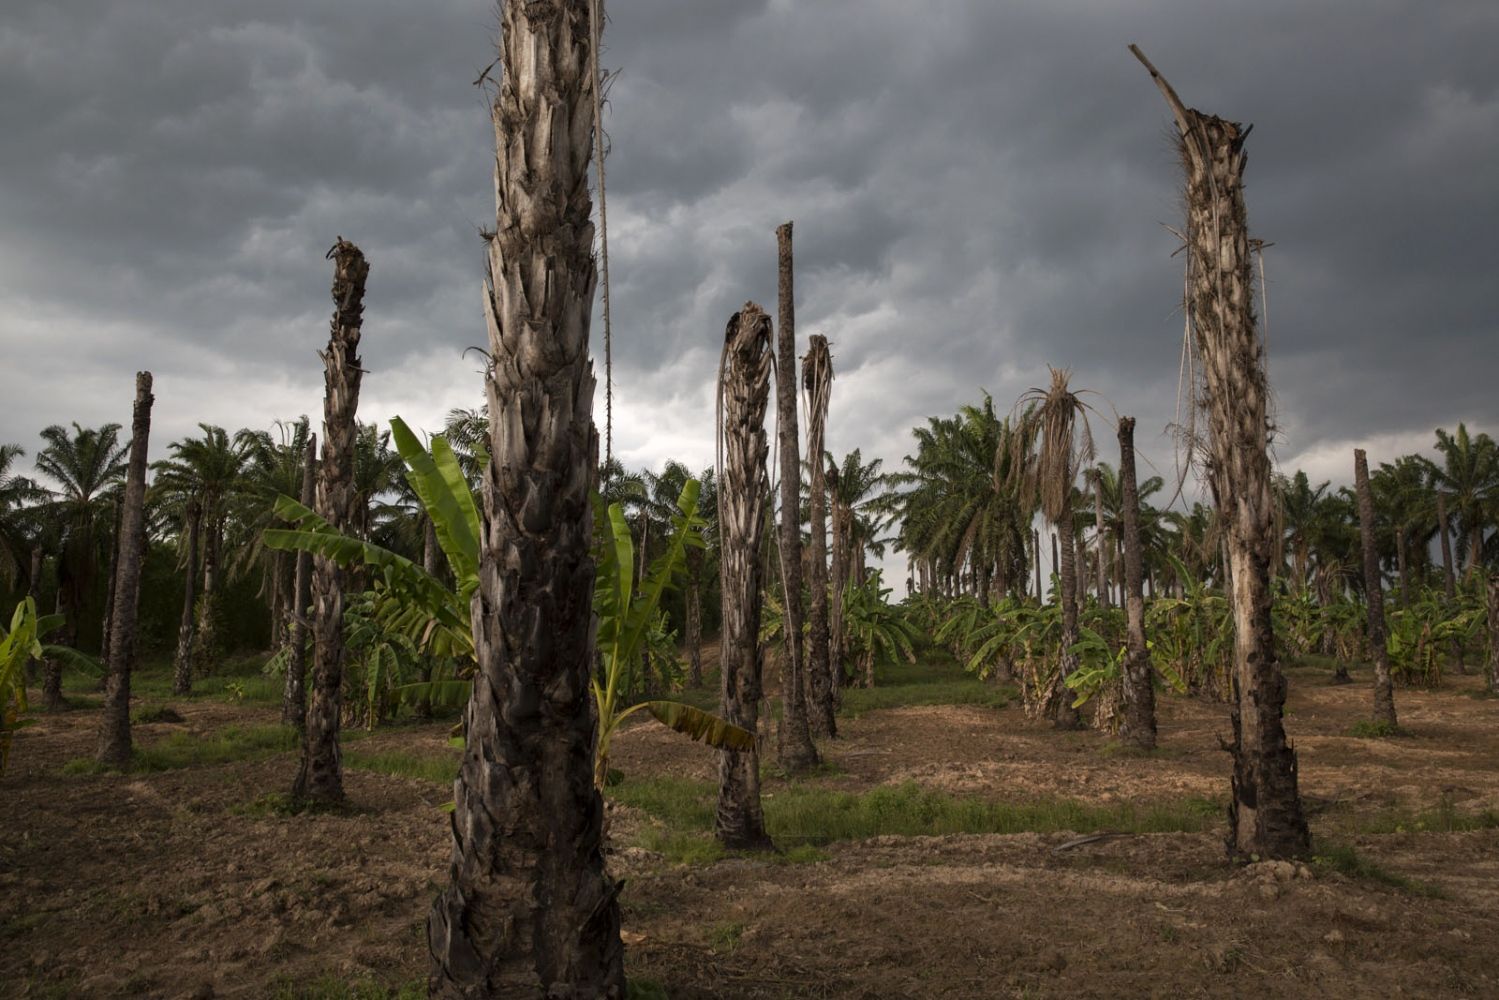 A storm moves over an area of dead palm oil trees that the villagers have started farming other produce.